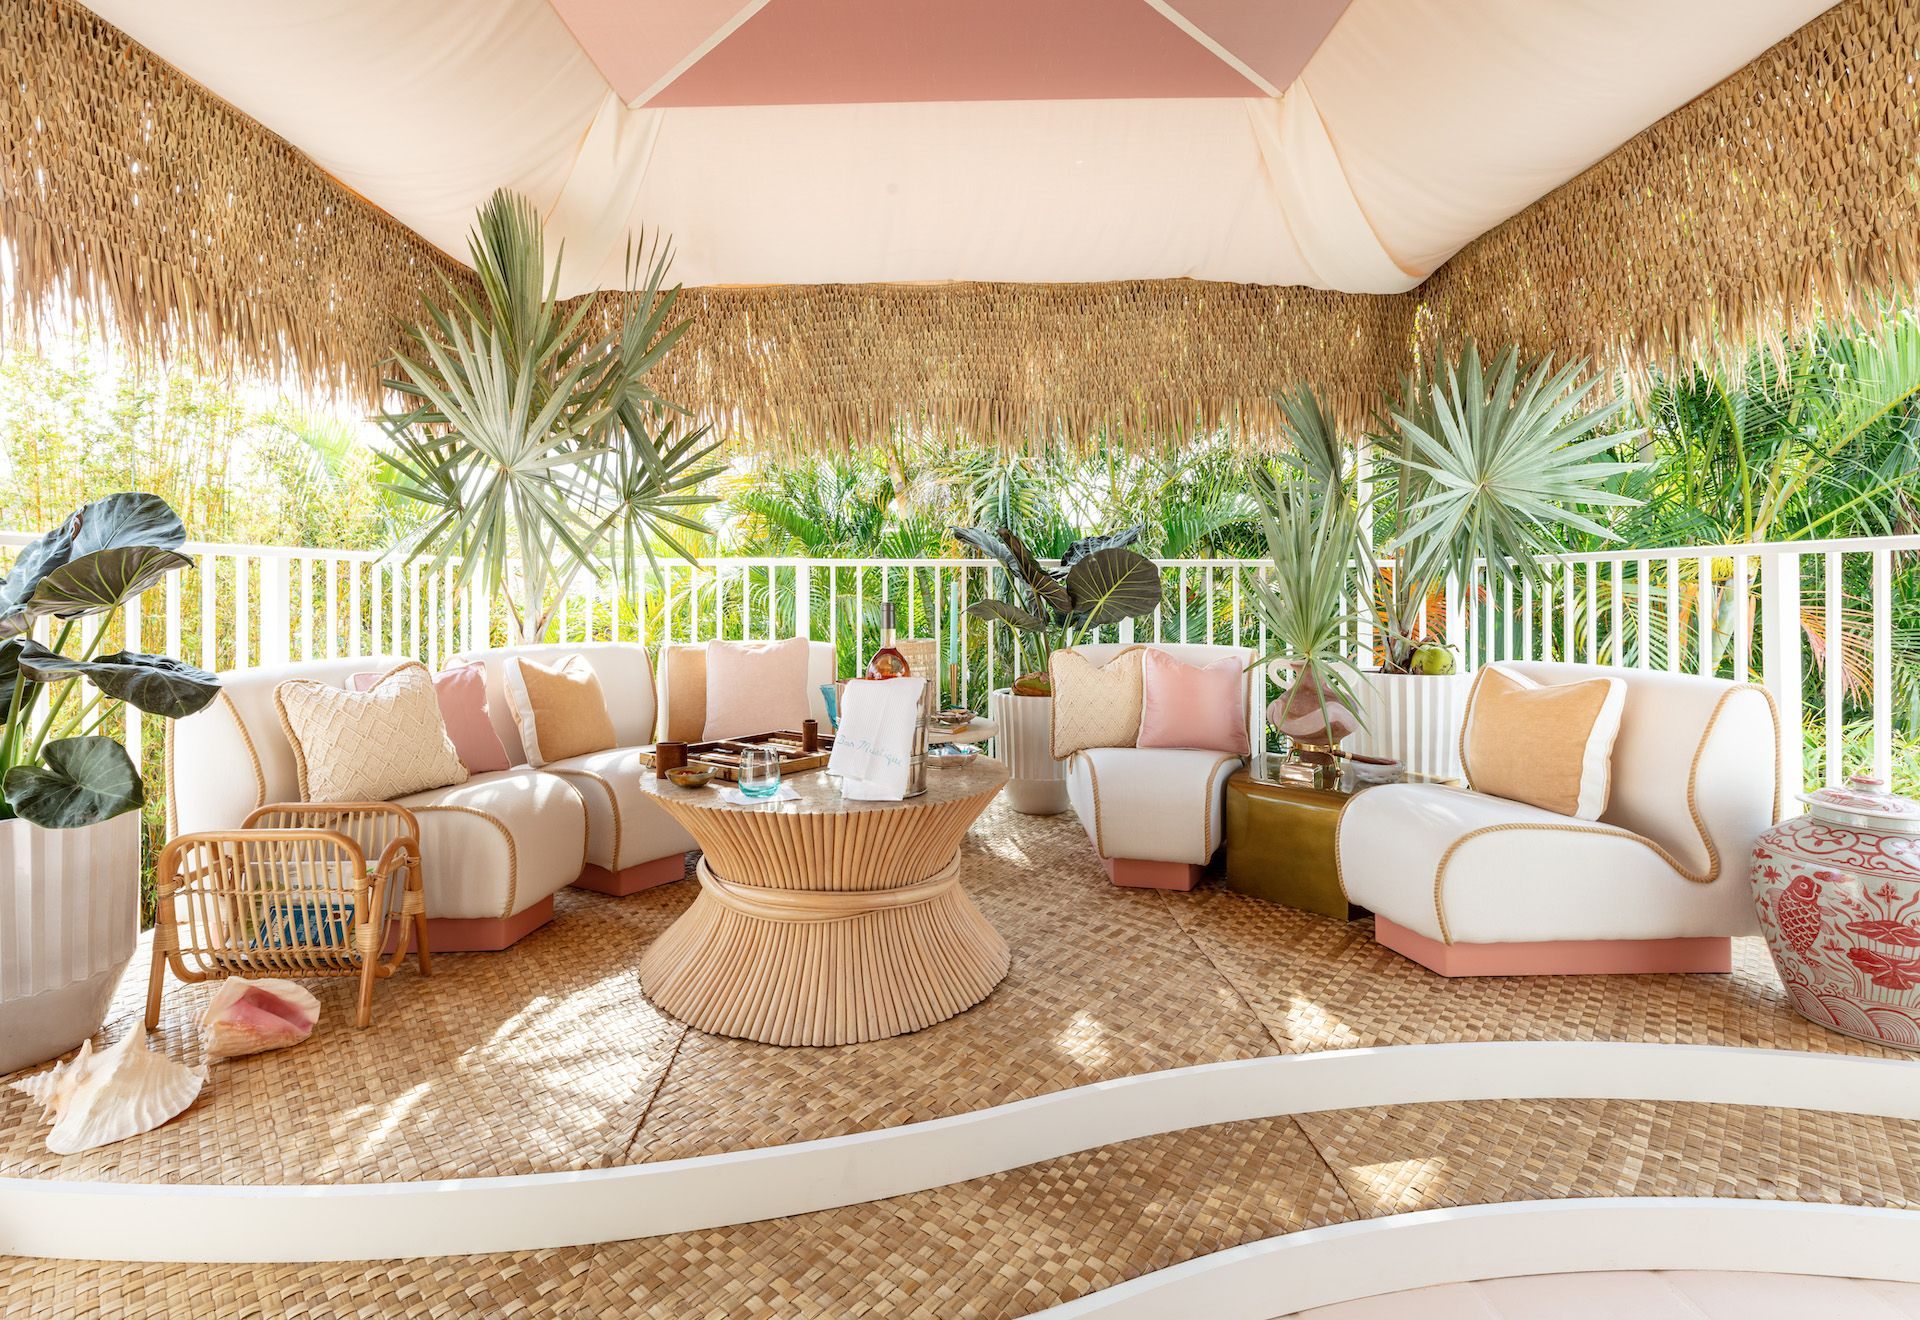 The Kips Bay Palm Beach Show House Is Fueling Our Summer Dreams